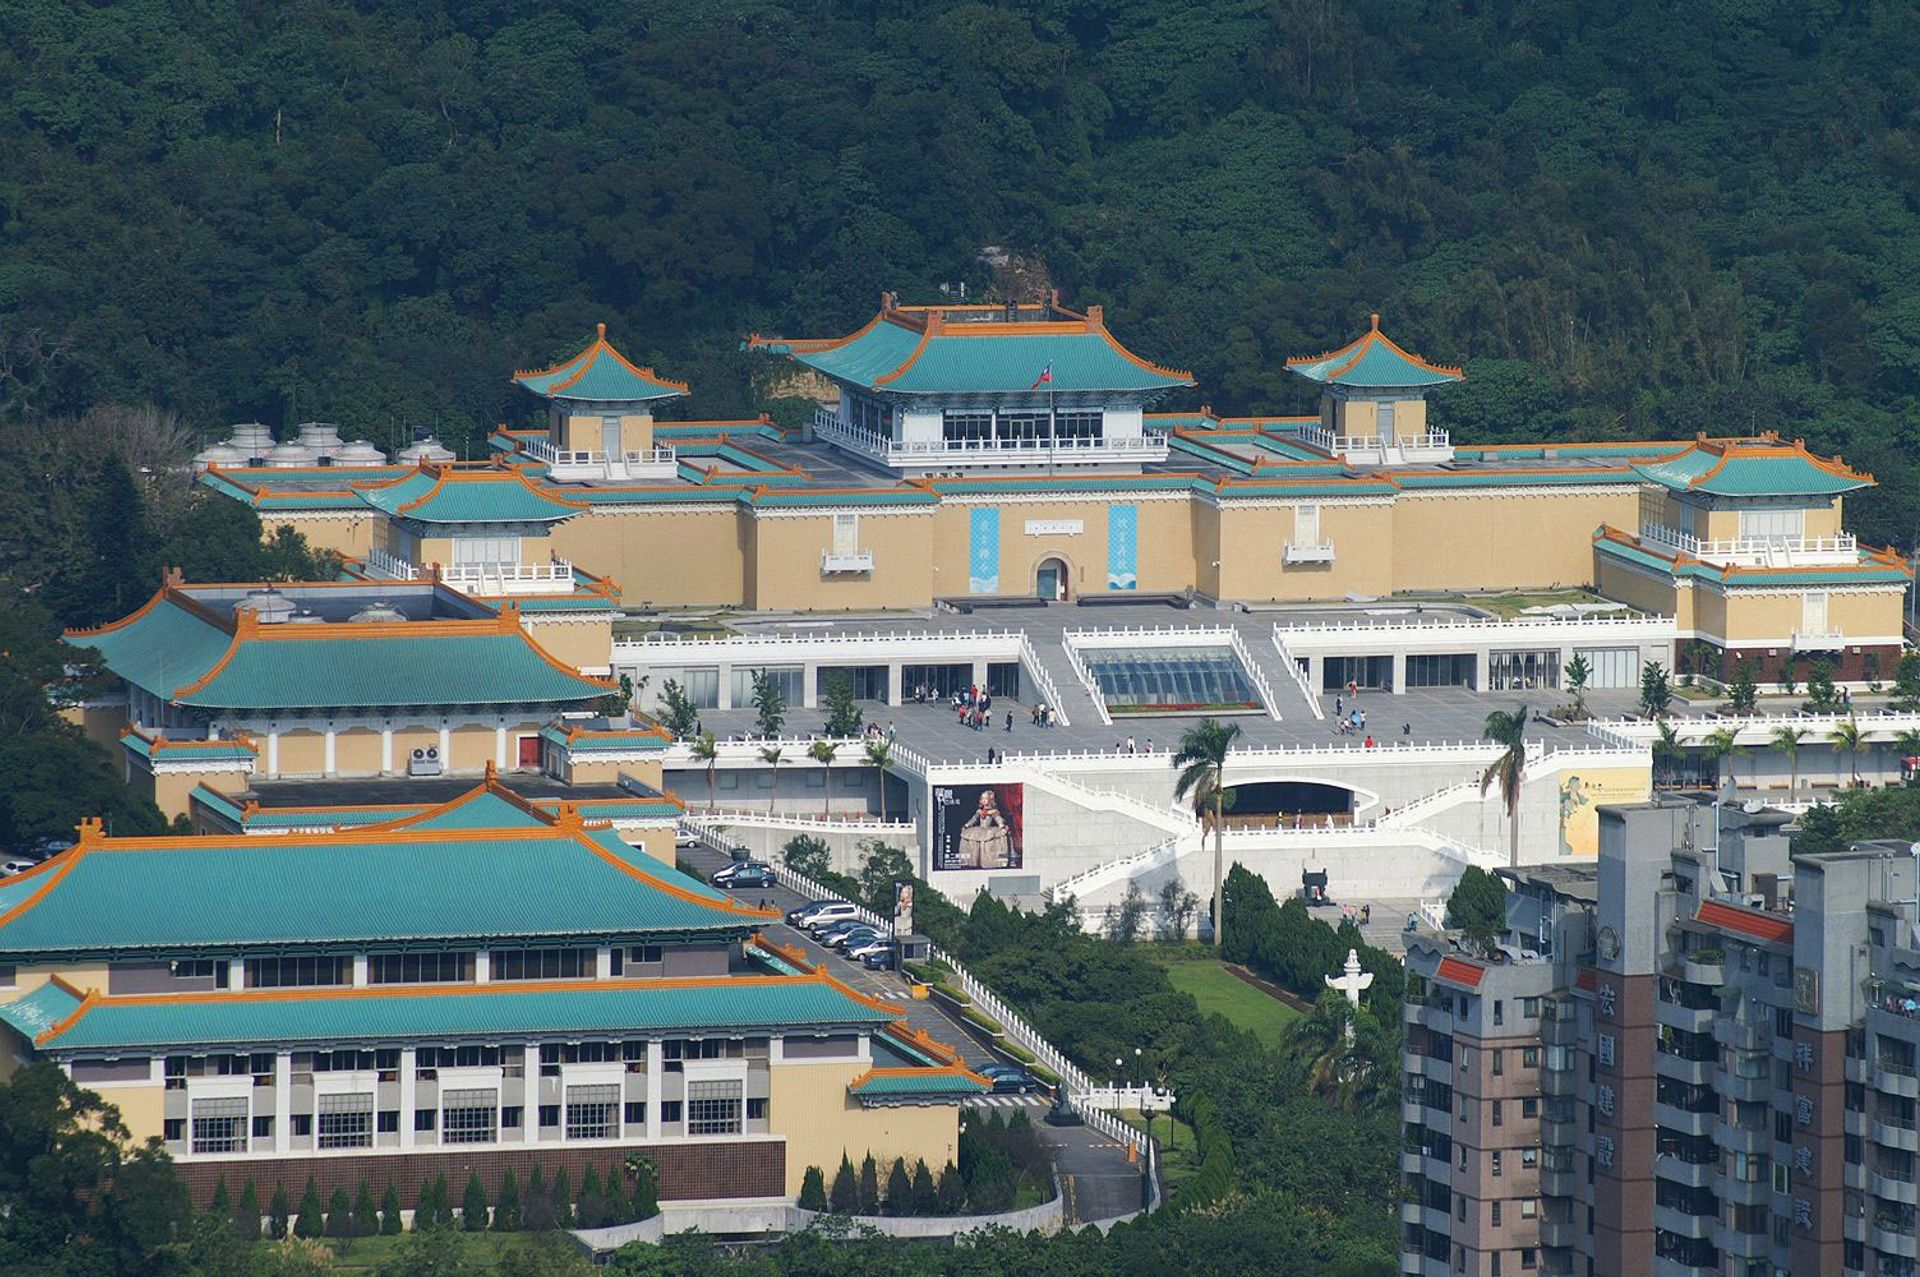 The Chinese are shunning Taipei's National Palace museum